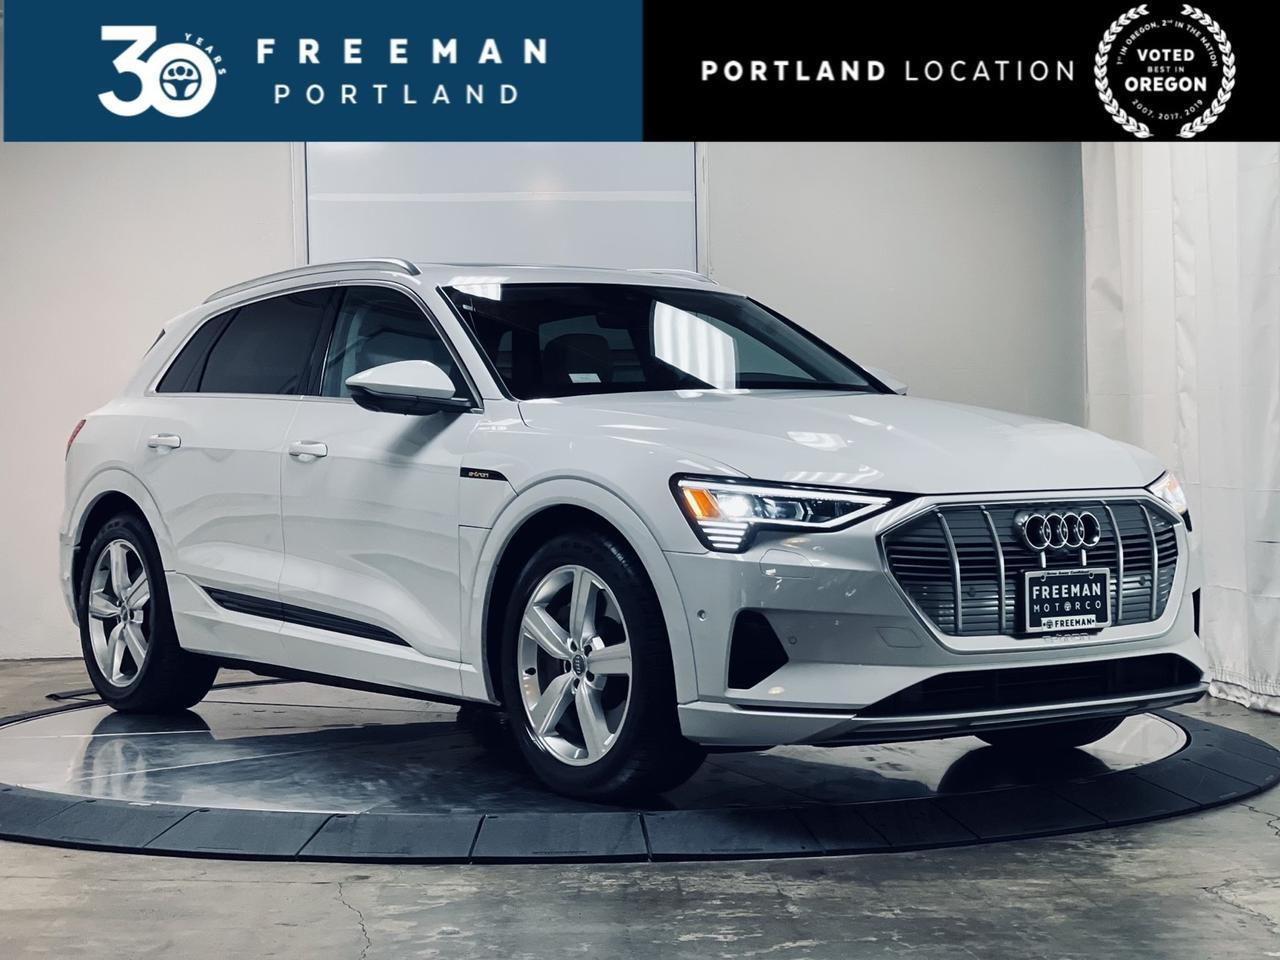 2019 Audi e-tron Premium Plus Adaptive Cruise w/Traffic Jam Assist Portland OR